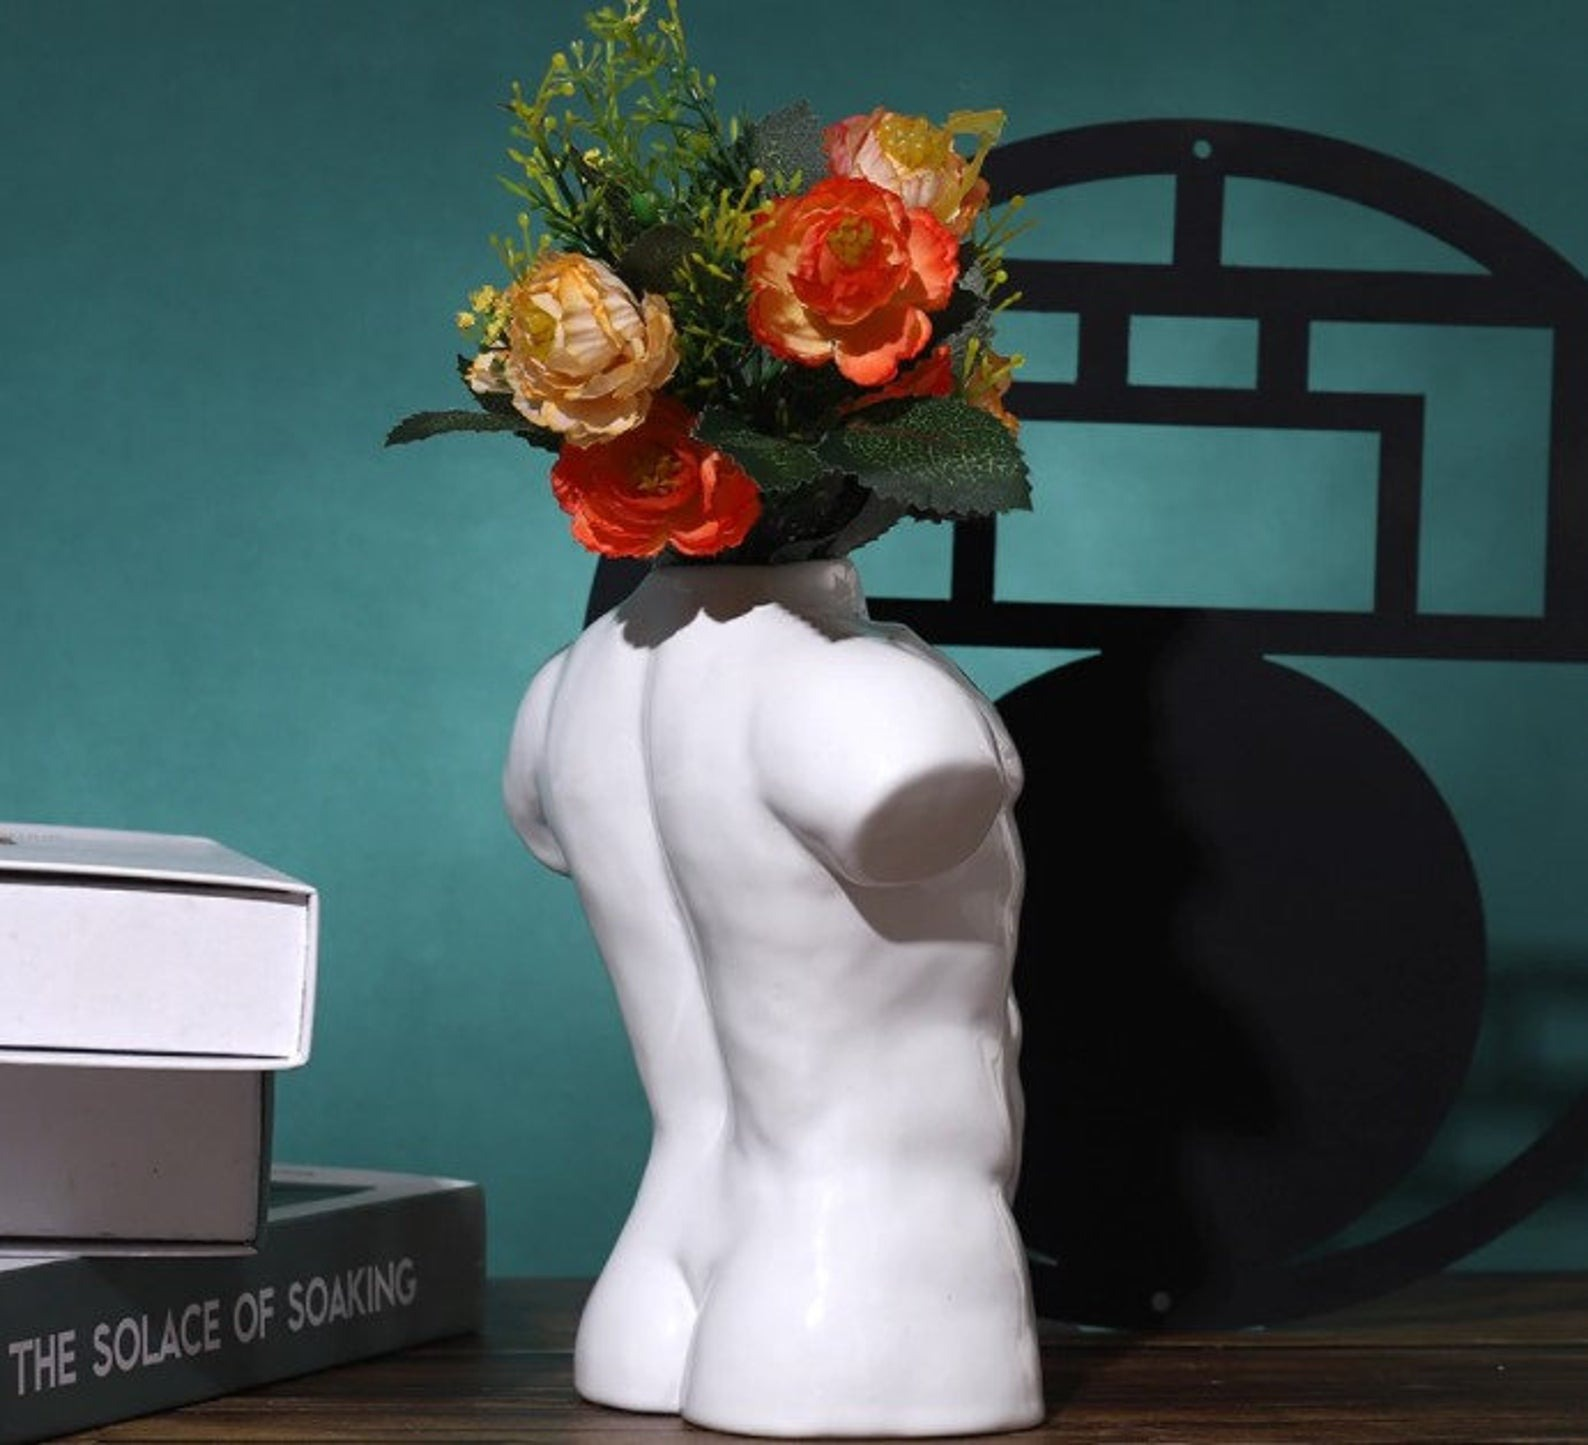 Our Lovely Art Shop Male Body Nude Vase